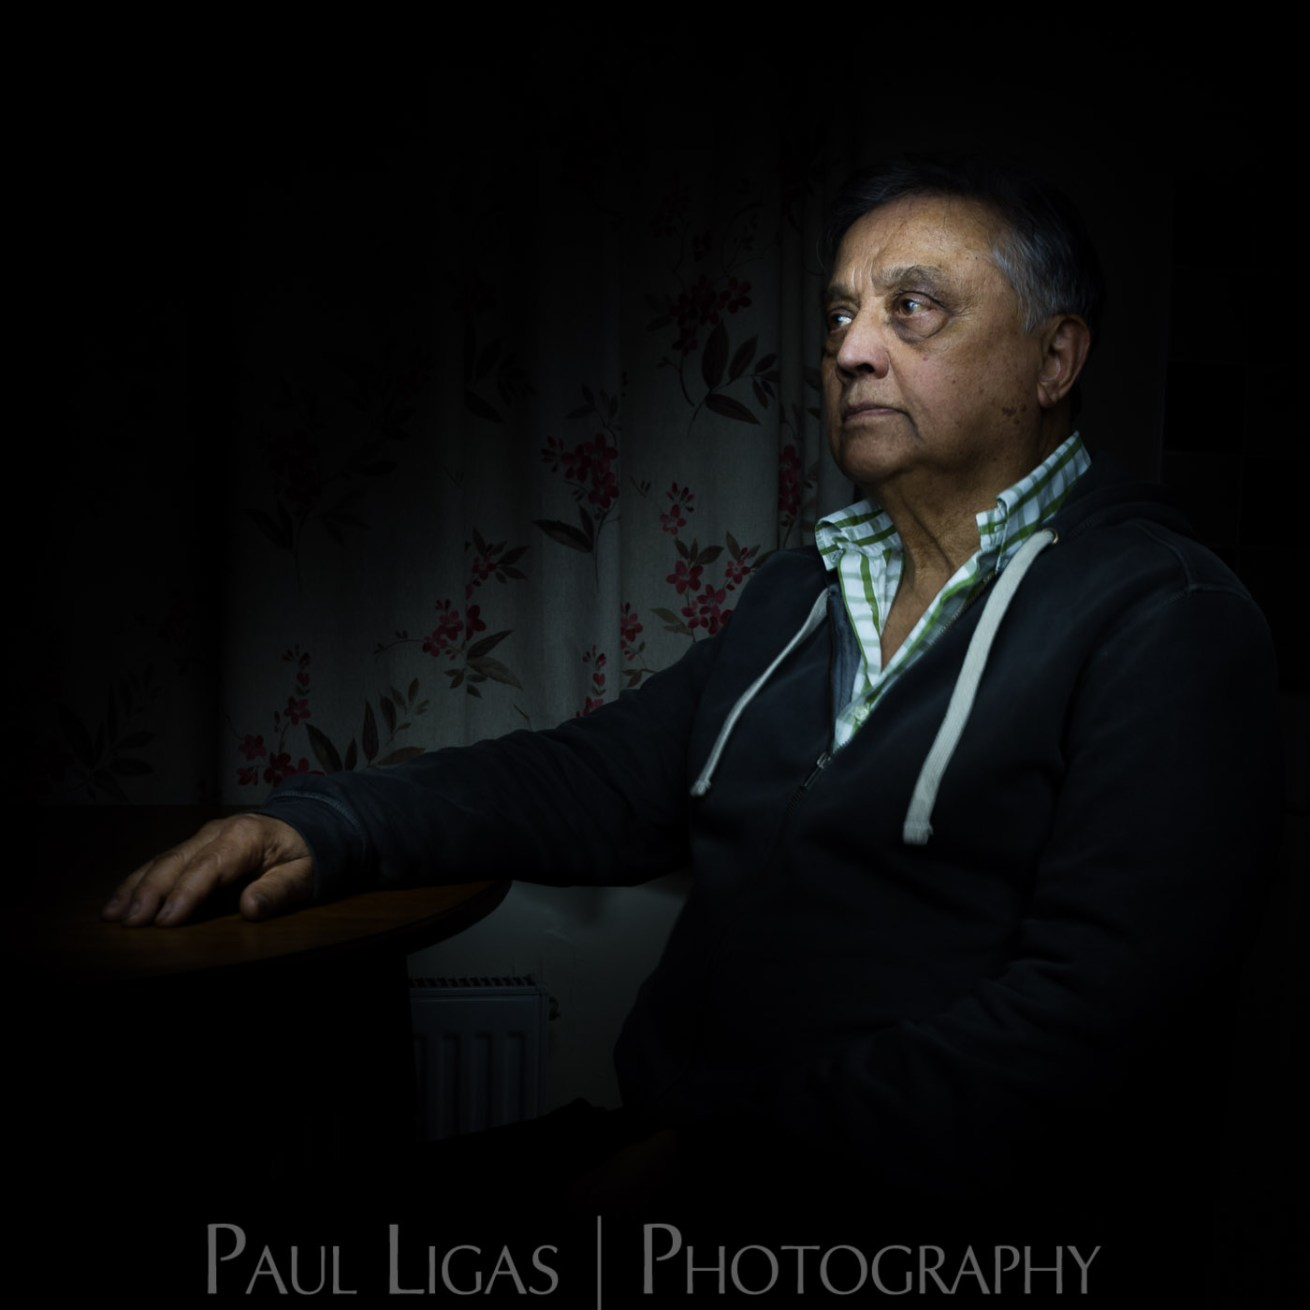 Light Painting Portrait photographer Herefordshire photography 7102